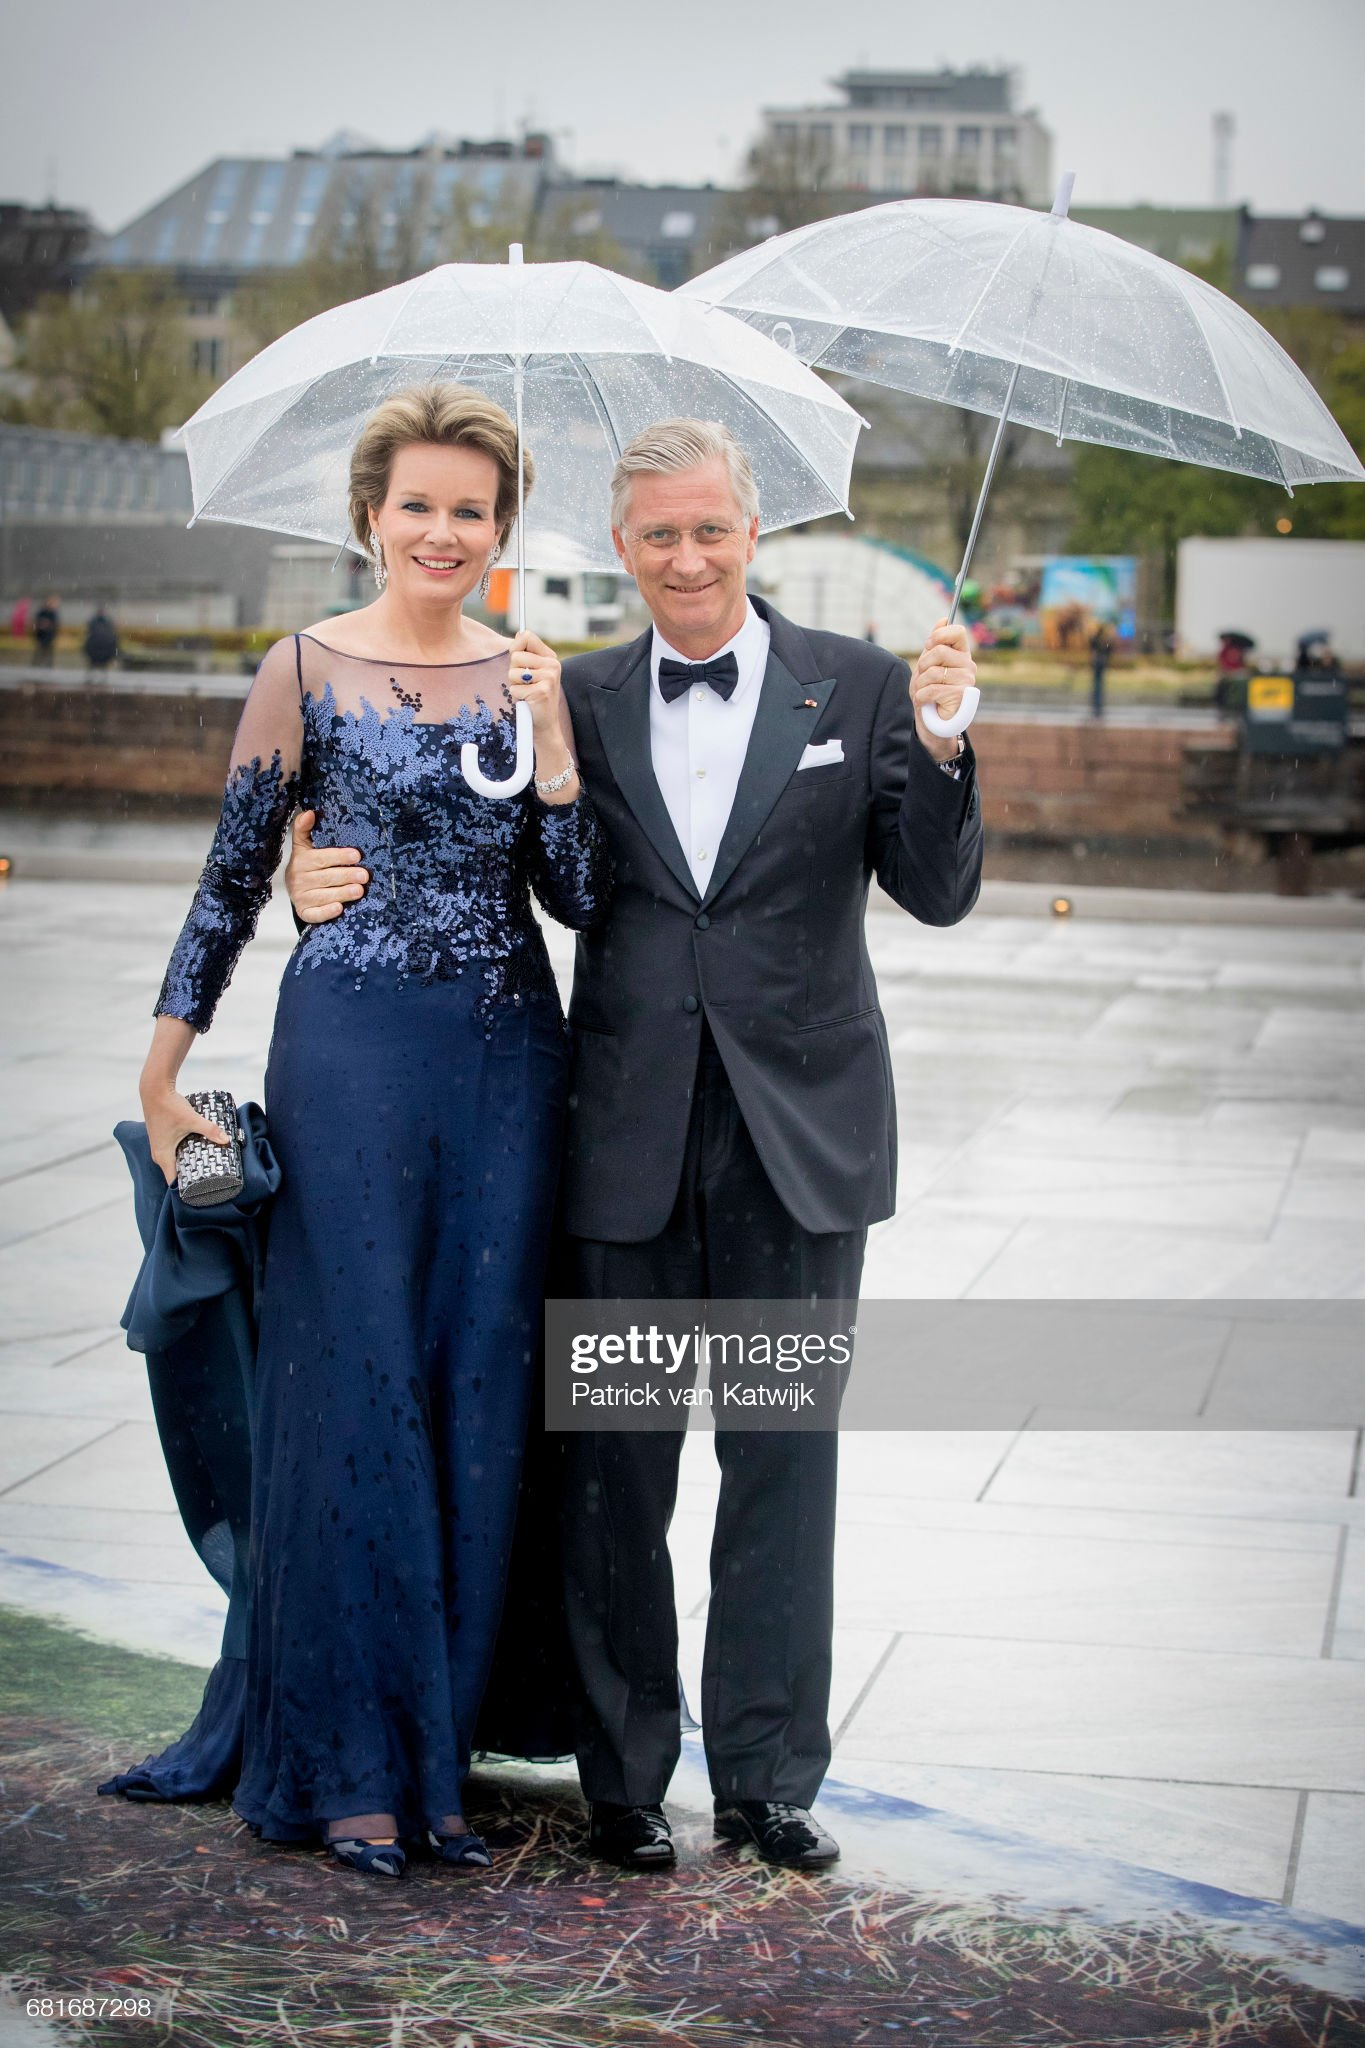 Вечерние наряды Королевы Матильды King and Queen Of Norway Celebrate Their 80th Birthdays - Banquet At The Opera House - Day 2 : News Photo